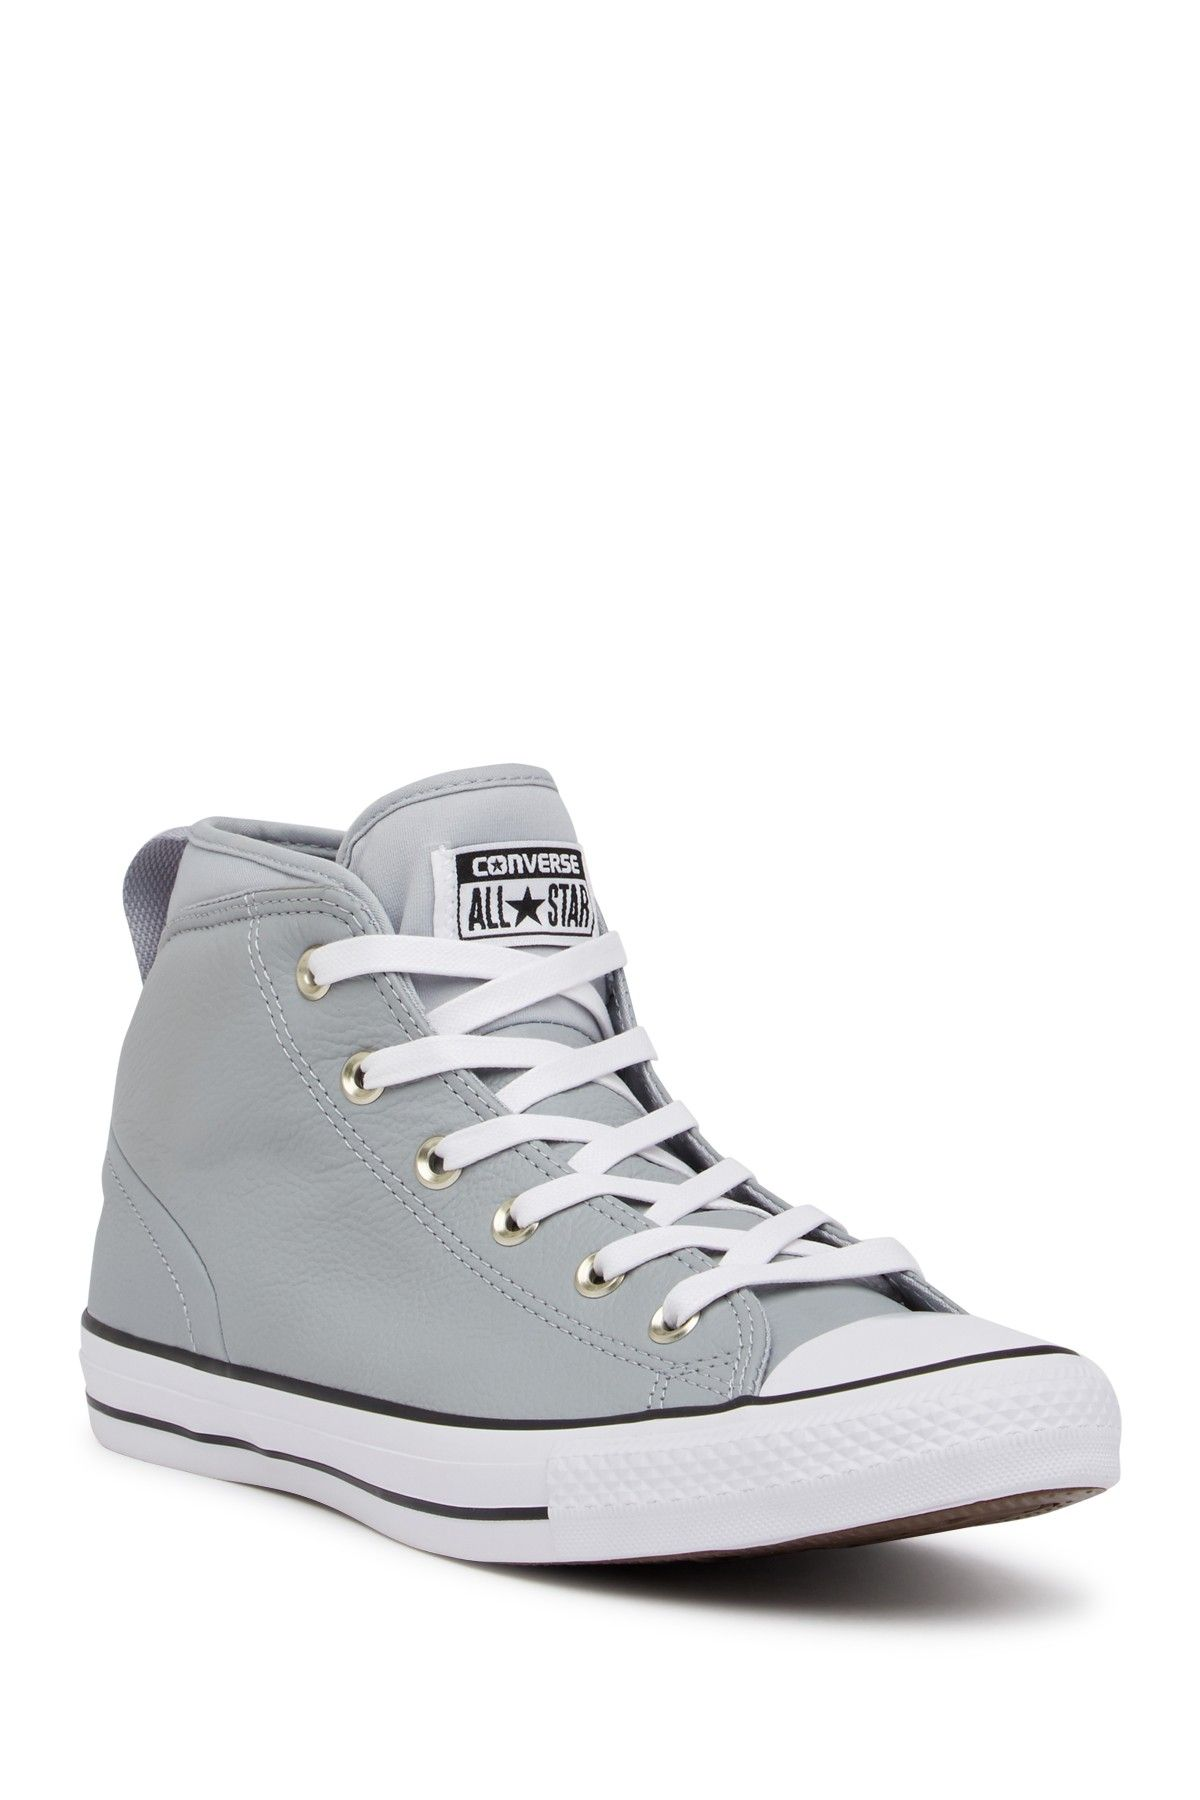 20ab0ee8b997 Chuck Taylor All Star Syde Street Mid Sneaker (Unisex)